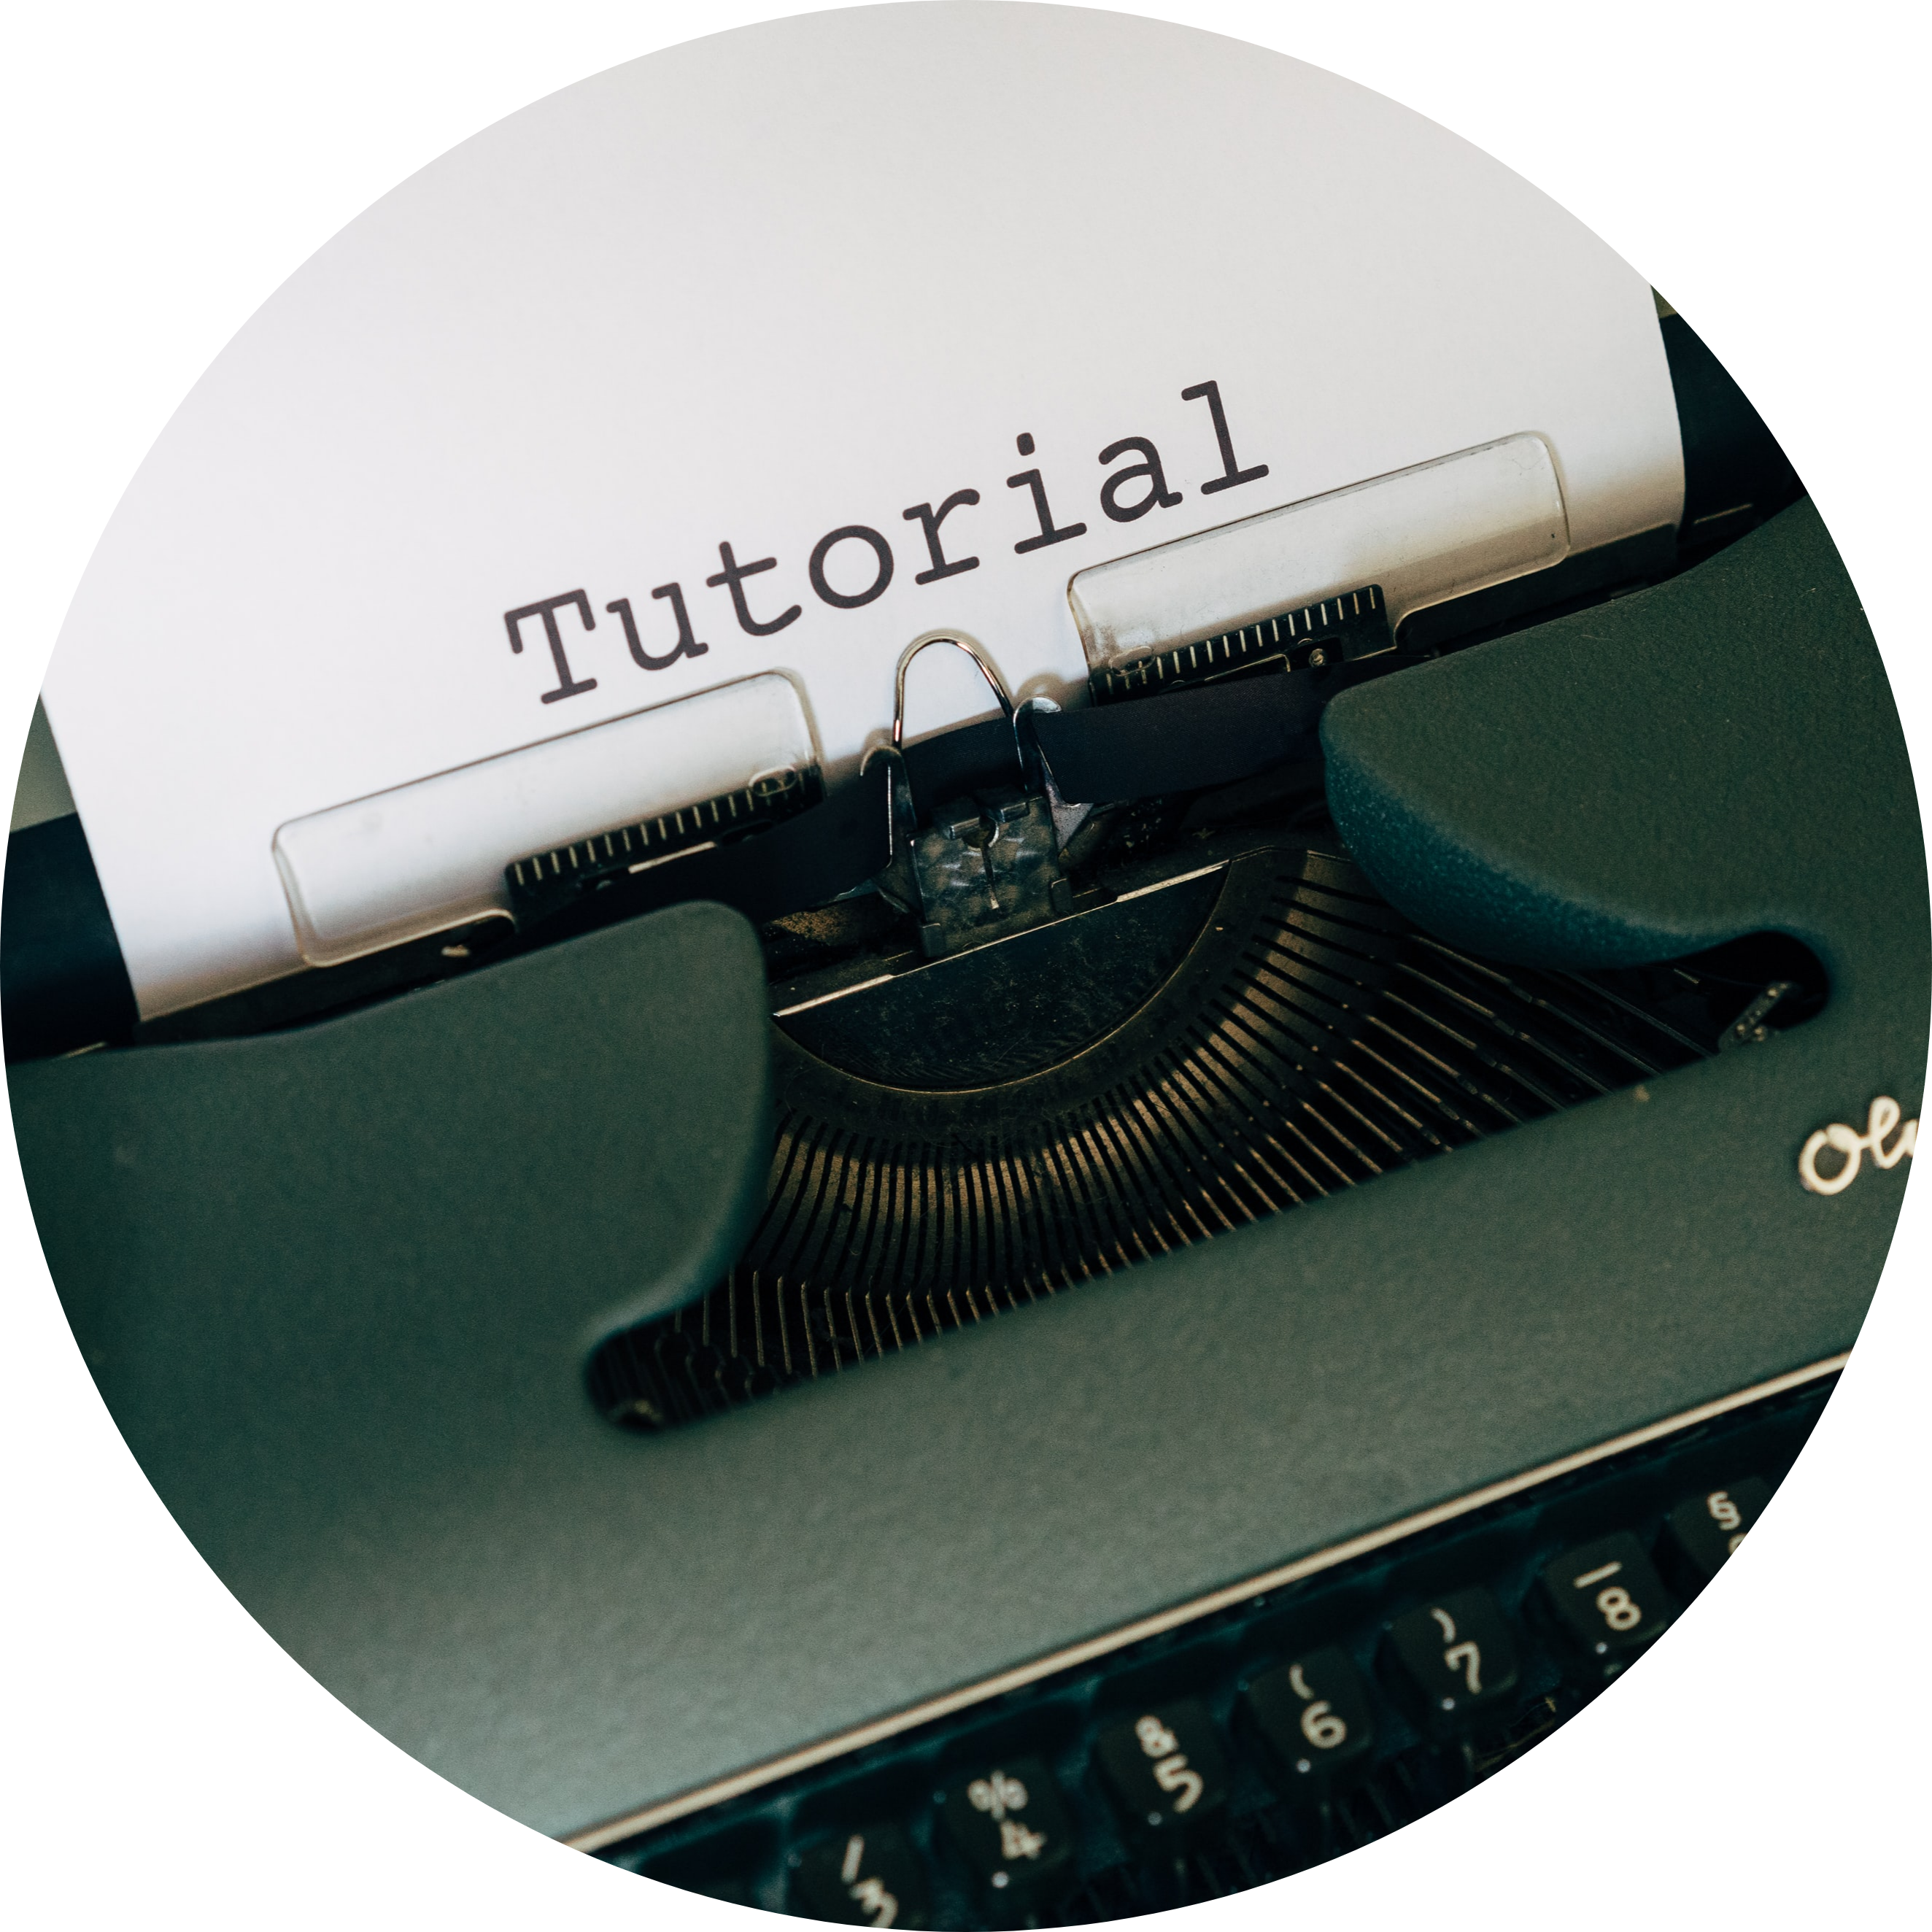 Image of typewriter typing tutorial